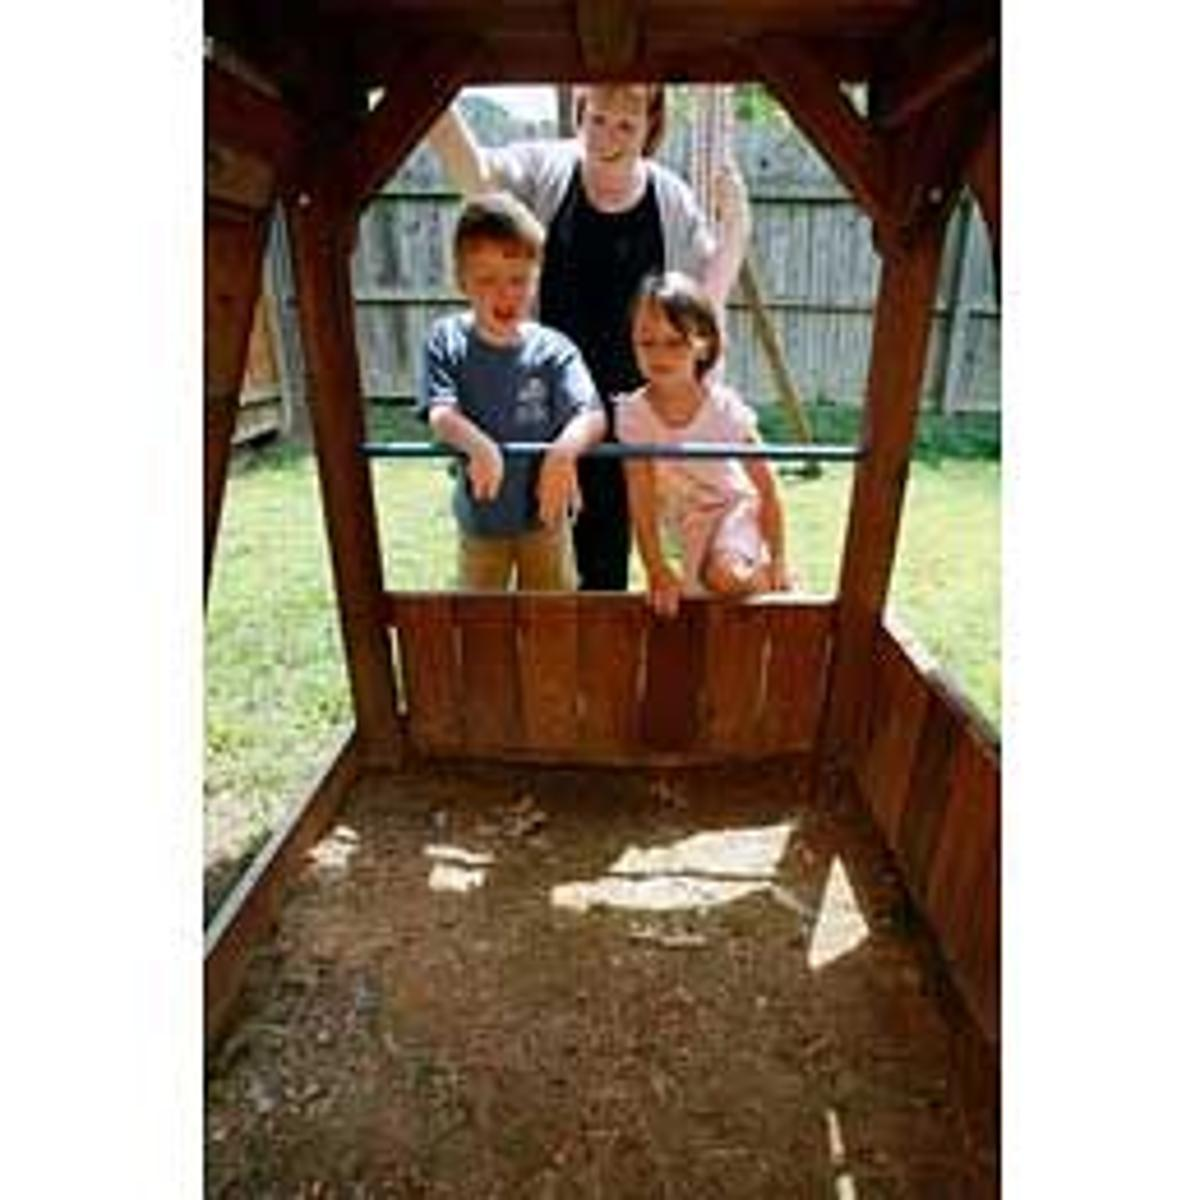 Toxicity Of Play Sand Worries Parents Entertainment